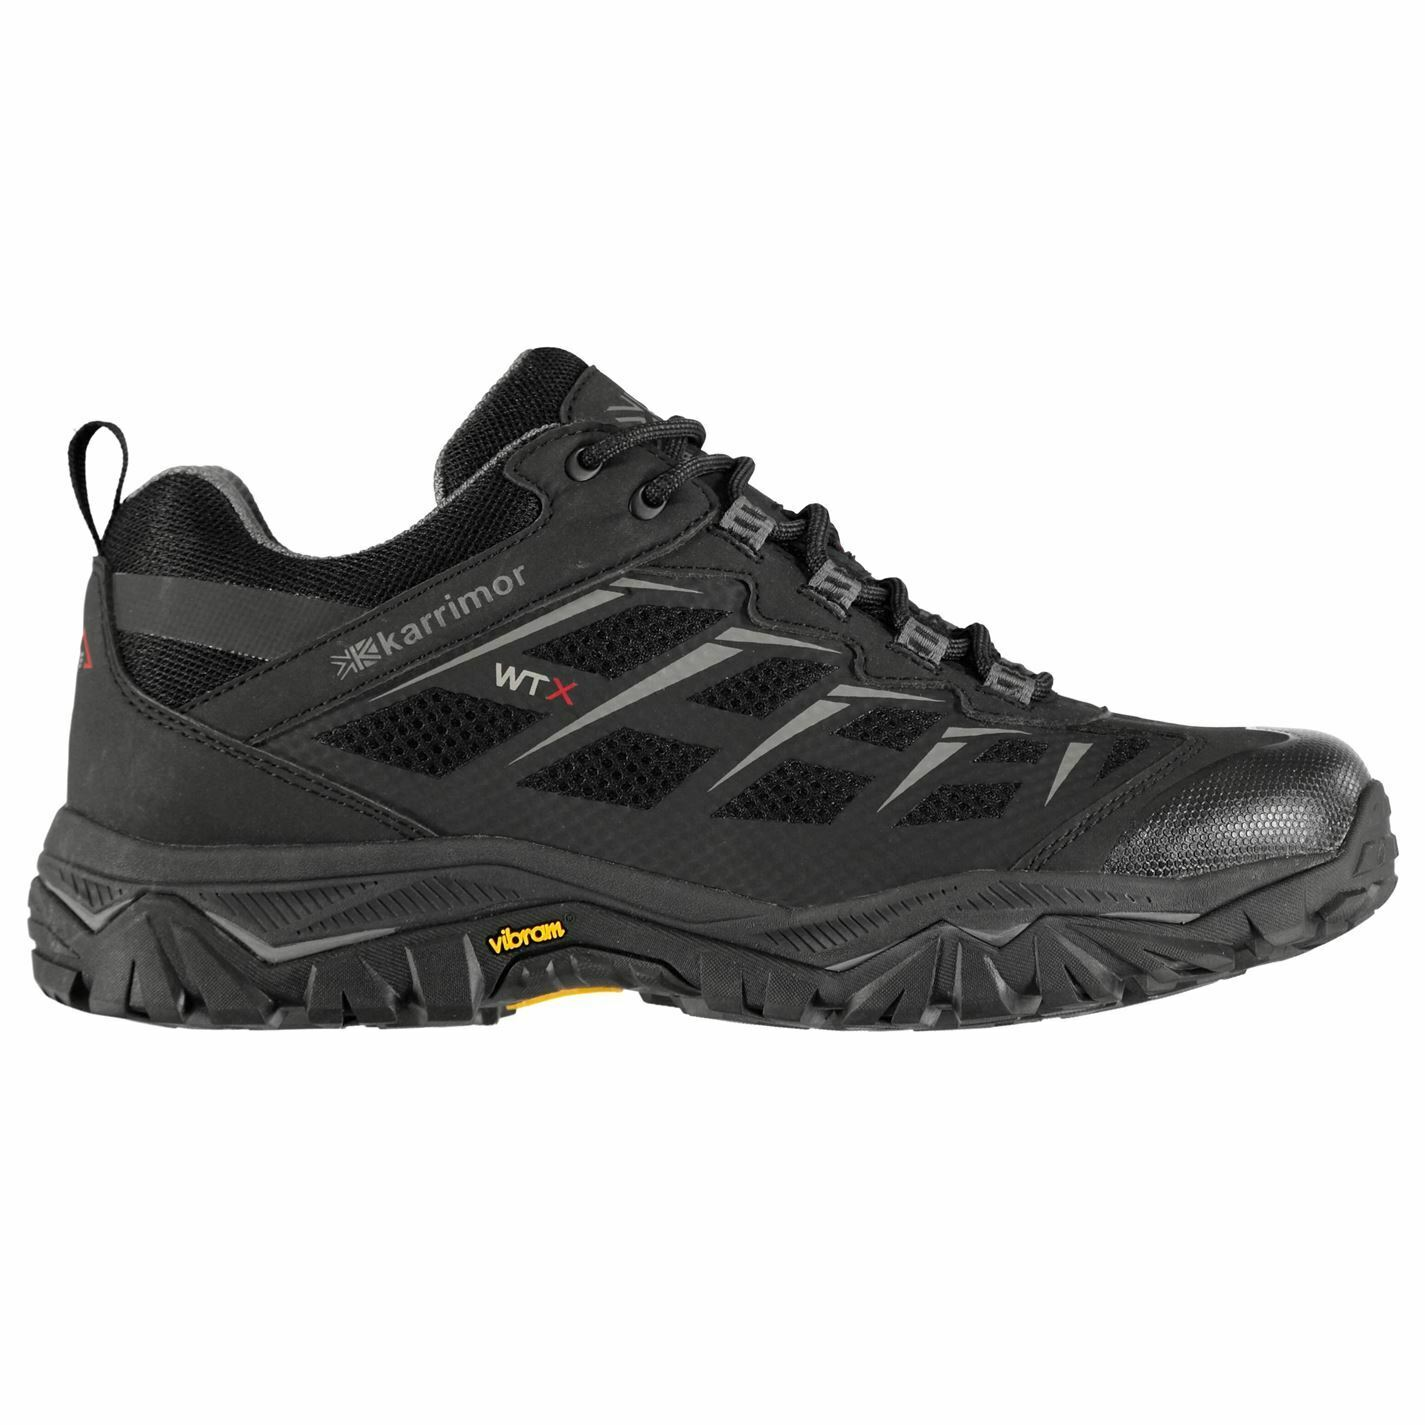 Karrimor Mens Pallas Pro Walking shoes Waterproof Lace  Up Breathable Padded  to provide you with a pleasant online shopping